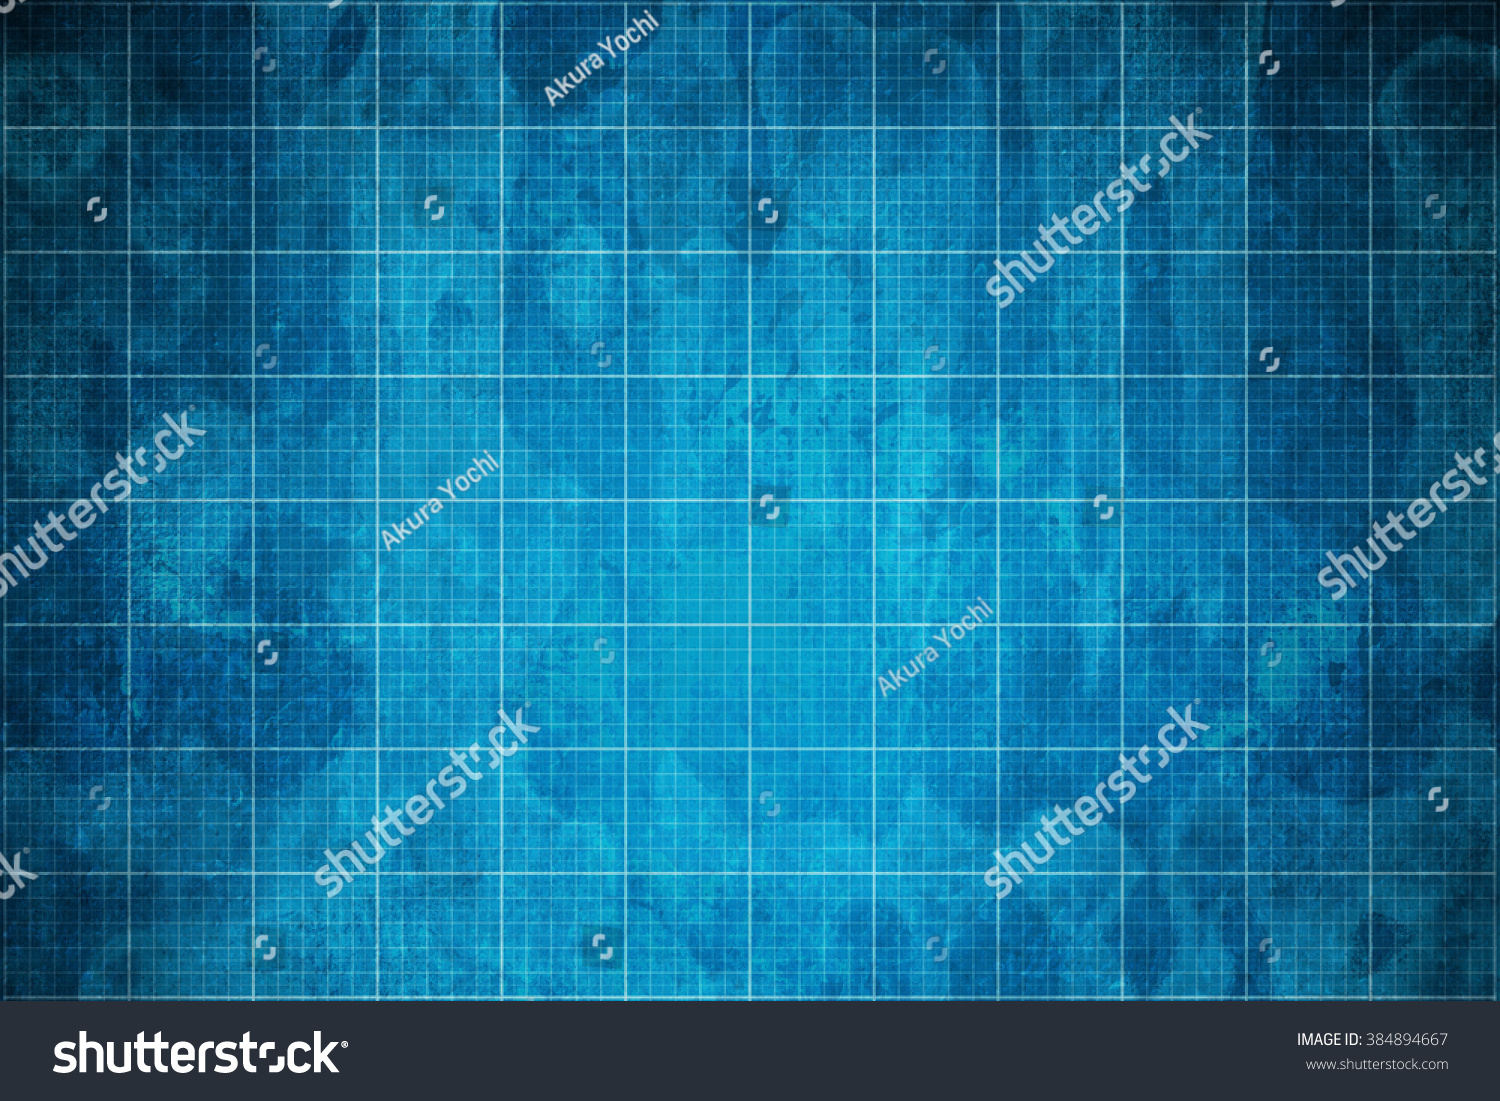 Old blueprint background texture technical backdrop stock photo old blueprint background texture technical backdrop paper concept technical industrial business malvernweather Gallery